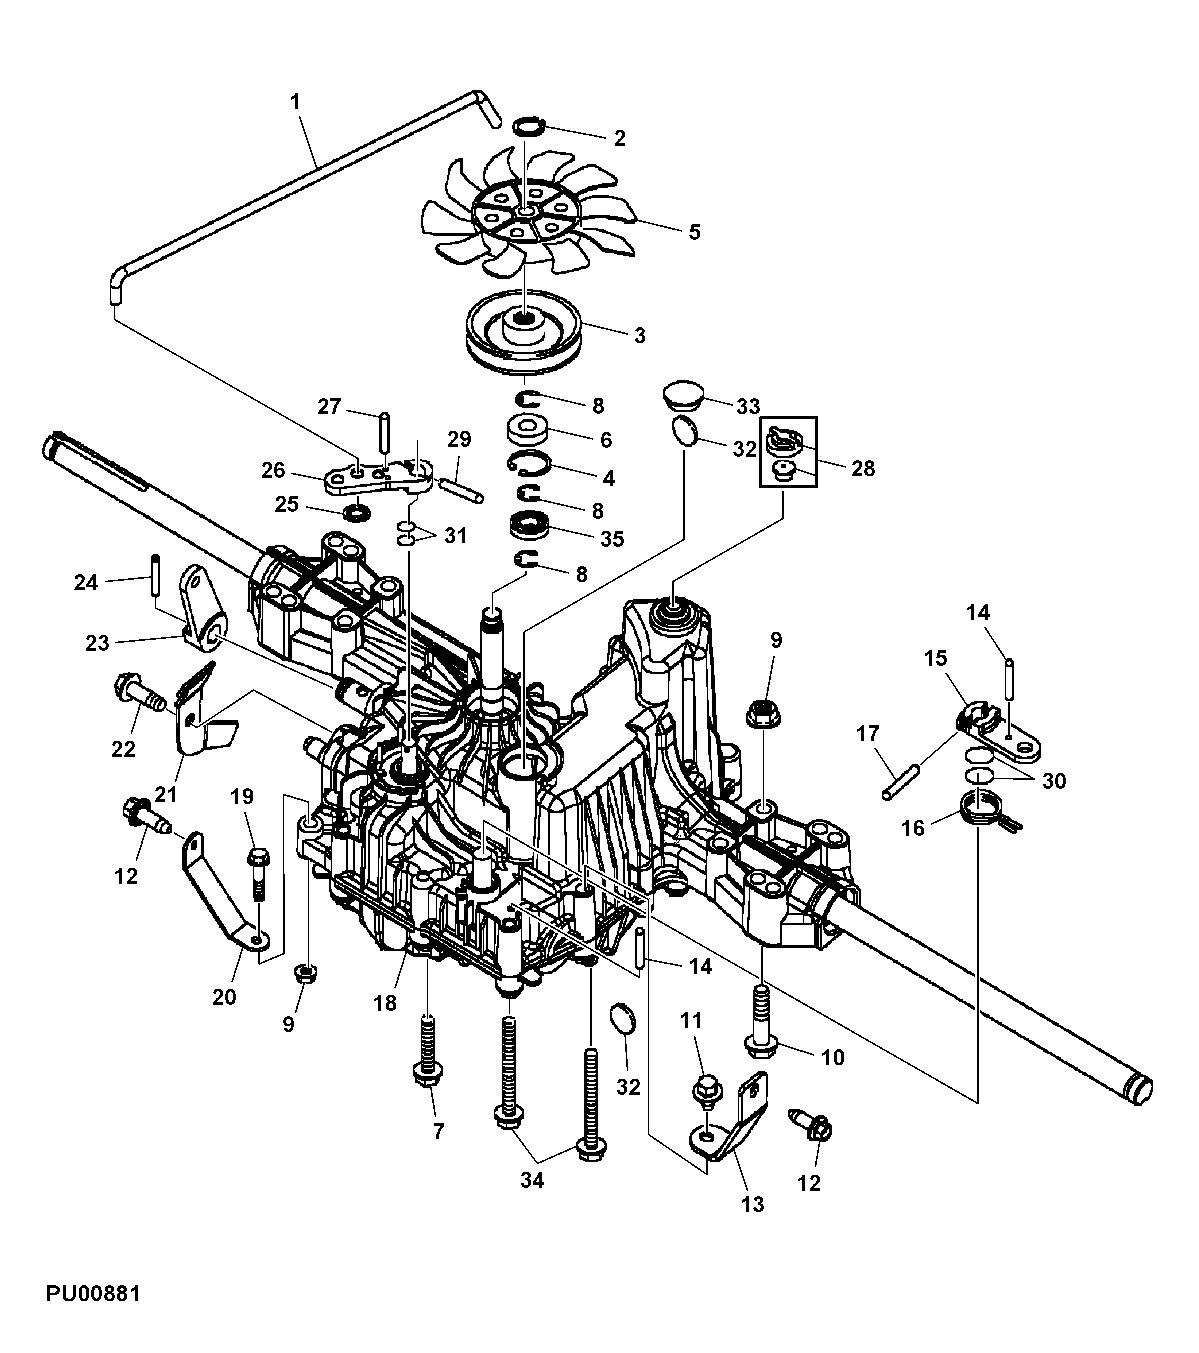 Unusual diagram of briggs and stratton lawn mower engine photos